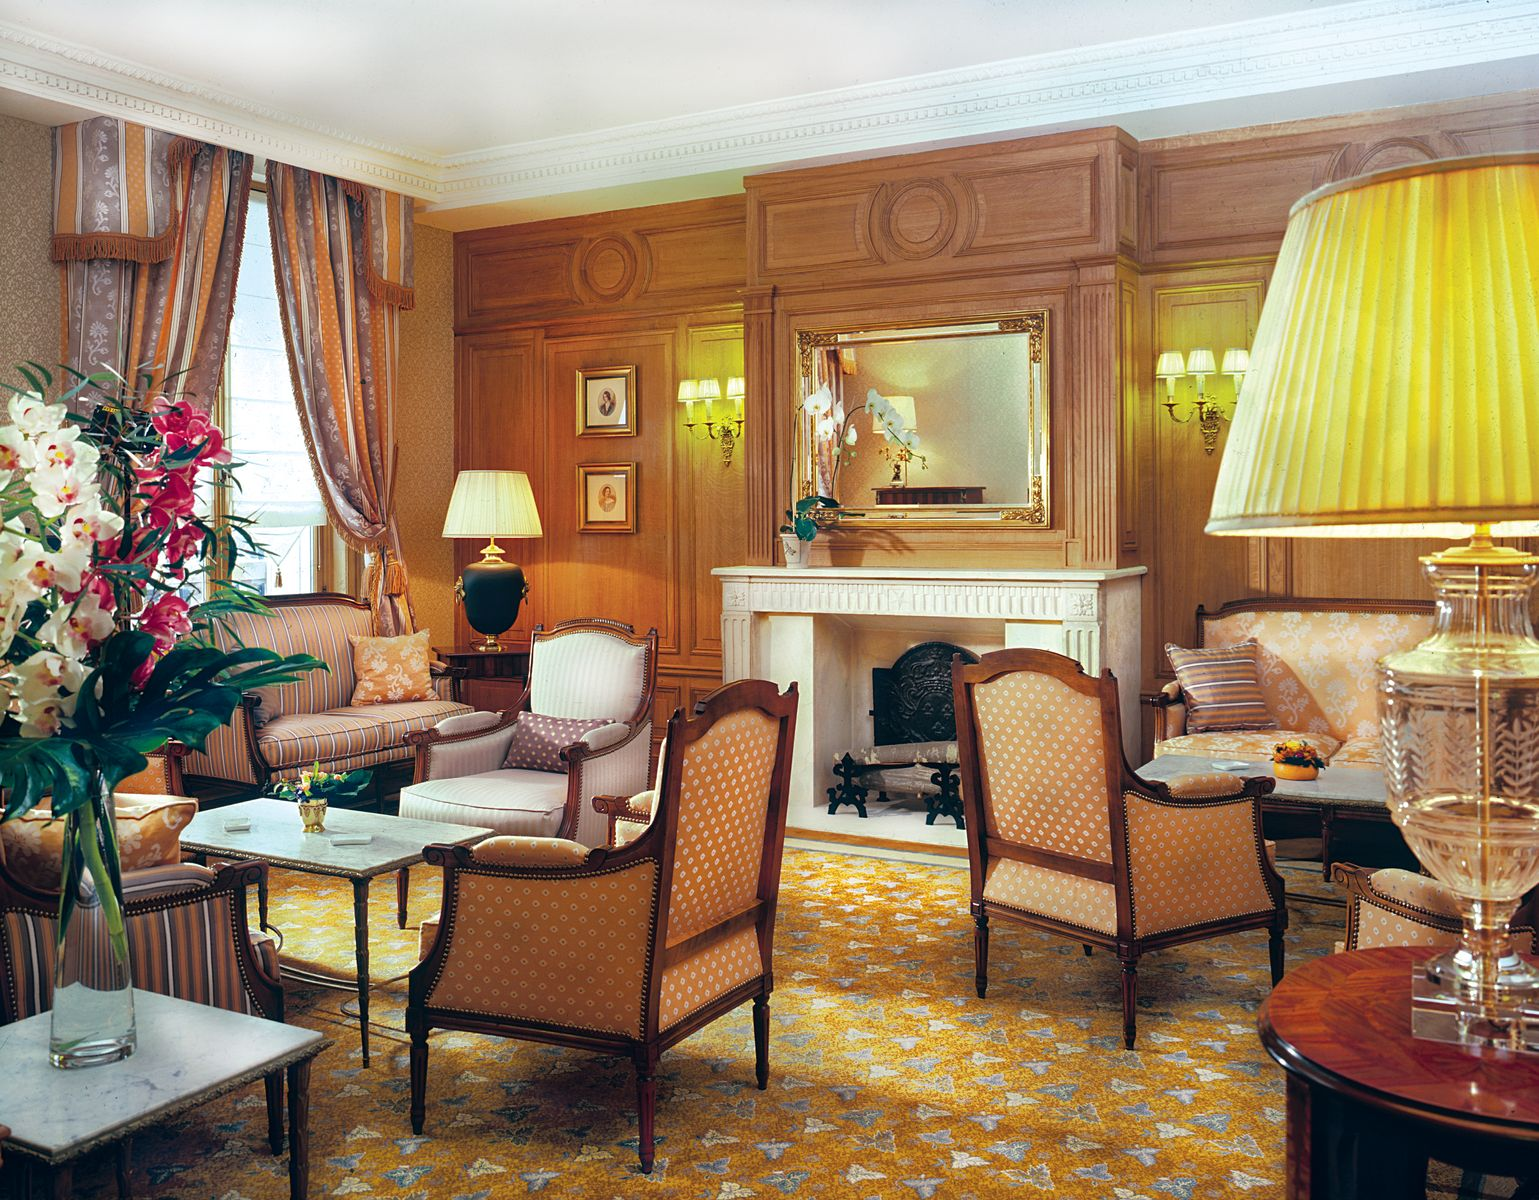 378/Bar lounge/Hotel Mayfair Paris Lounge_resultat.jpg